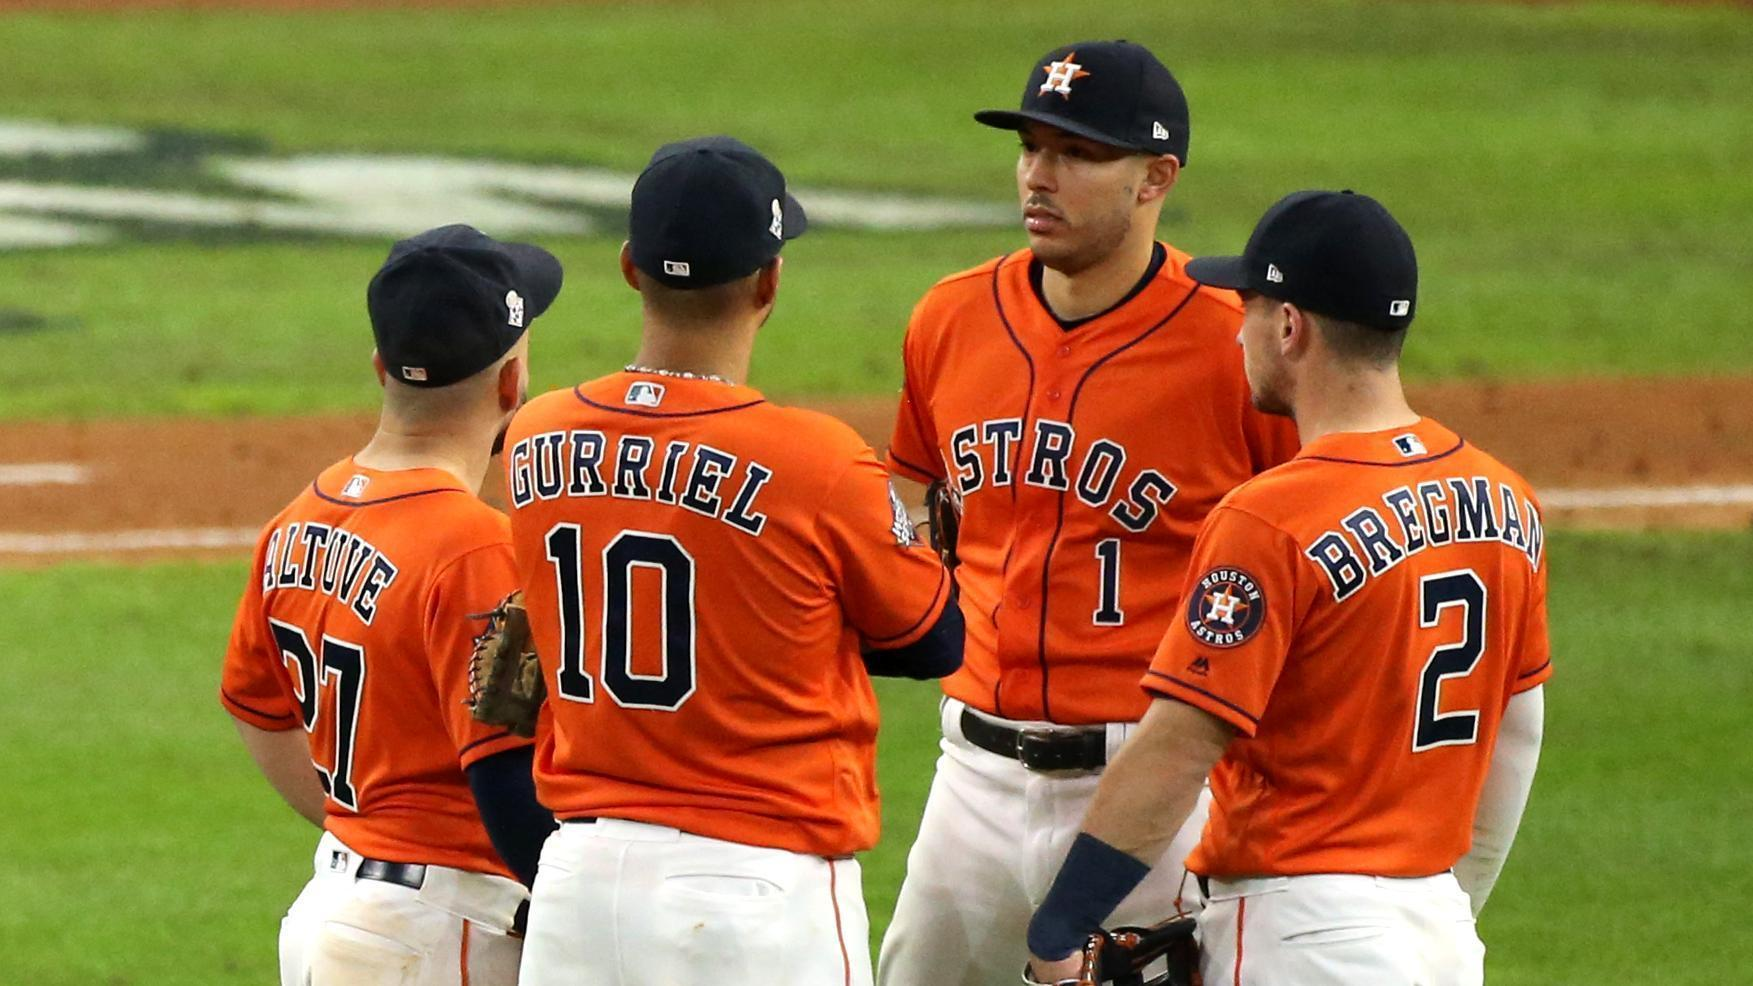 How will Astros deal with the scrutiny surrounding them?